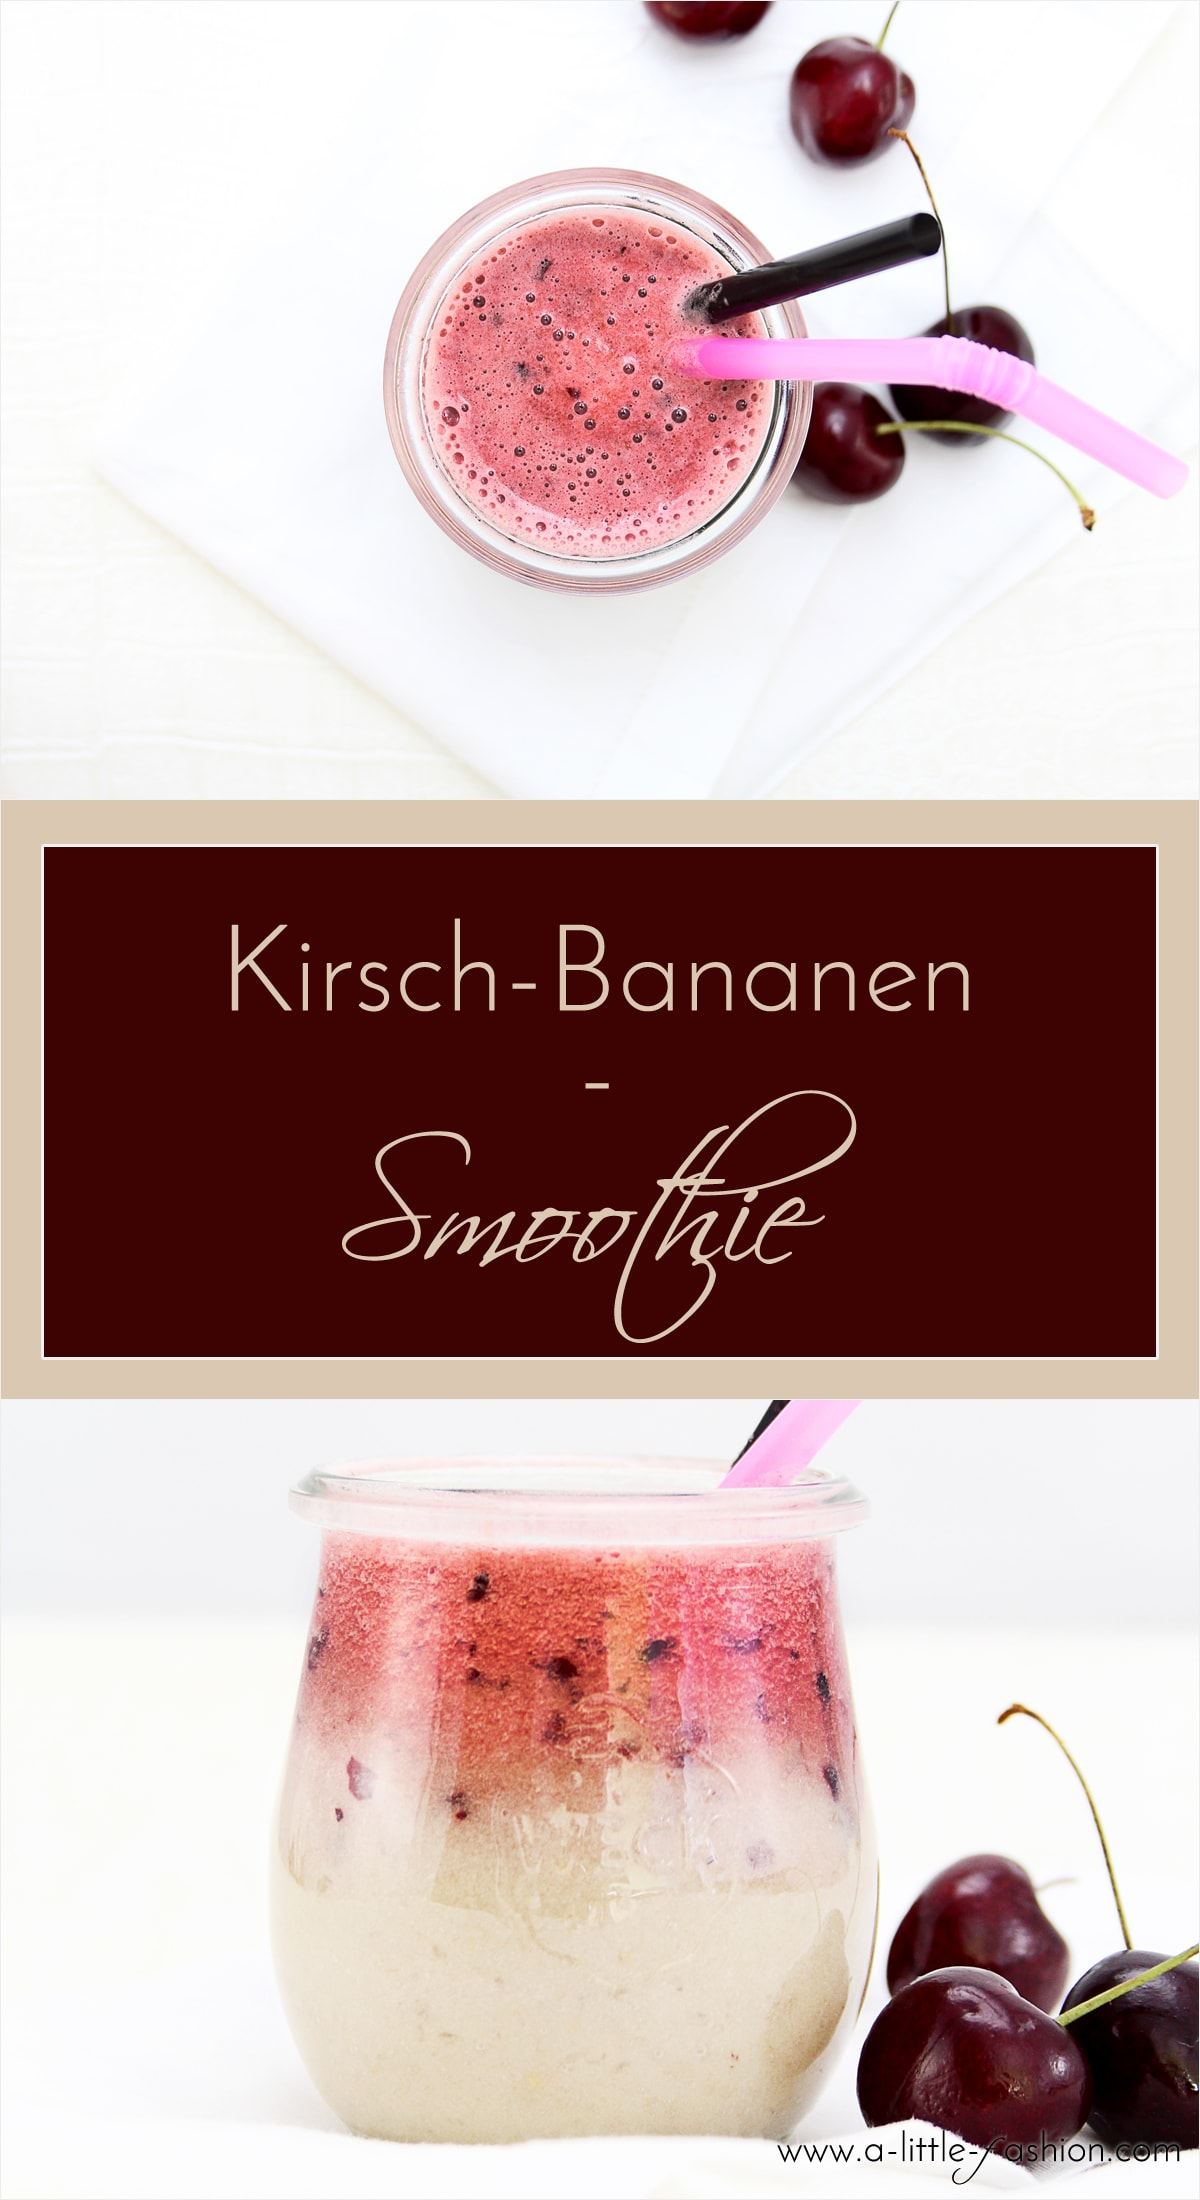 Kirsch-Bananen-Smoothie + Giveaway | A Little Fashion | https://www.filizity.com/food/kirsch-bananen-smoothie-giveaway